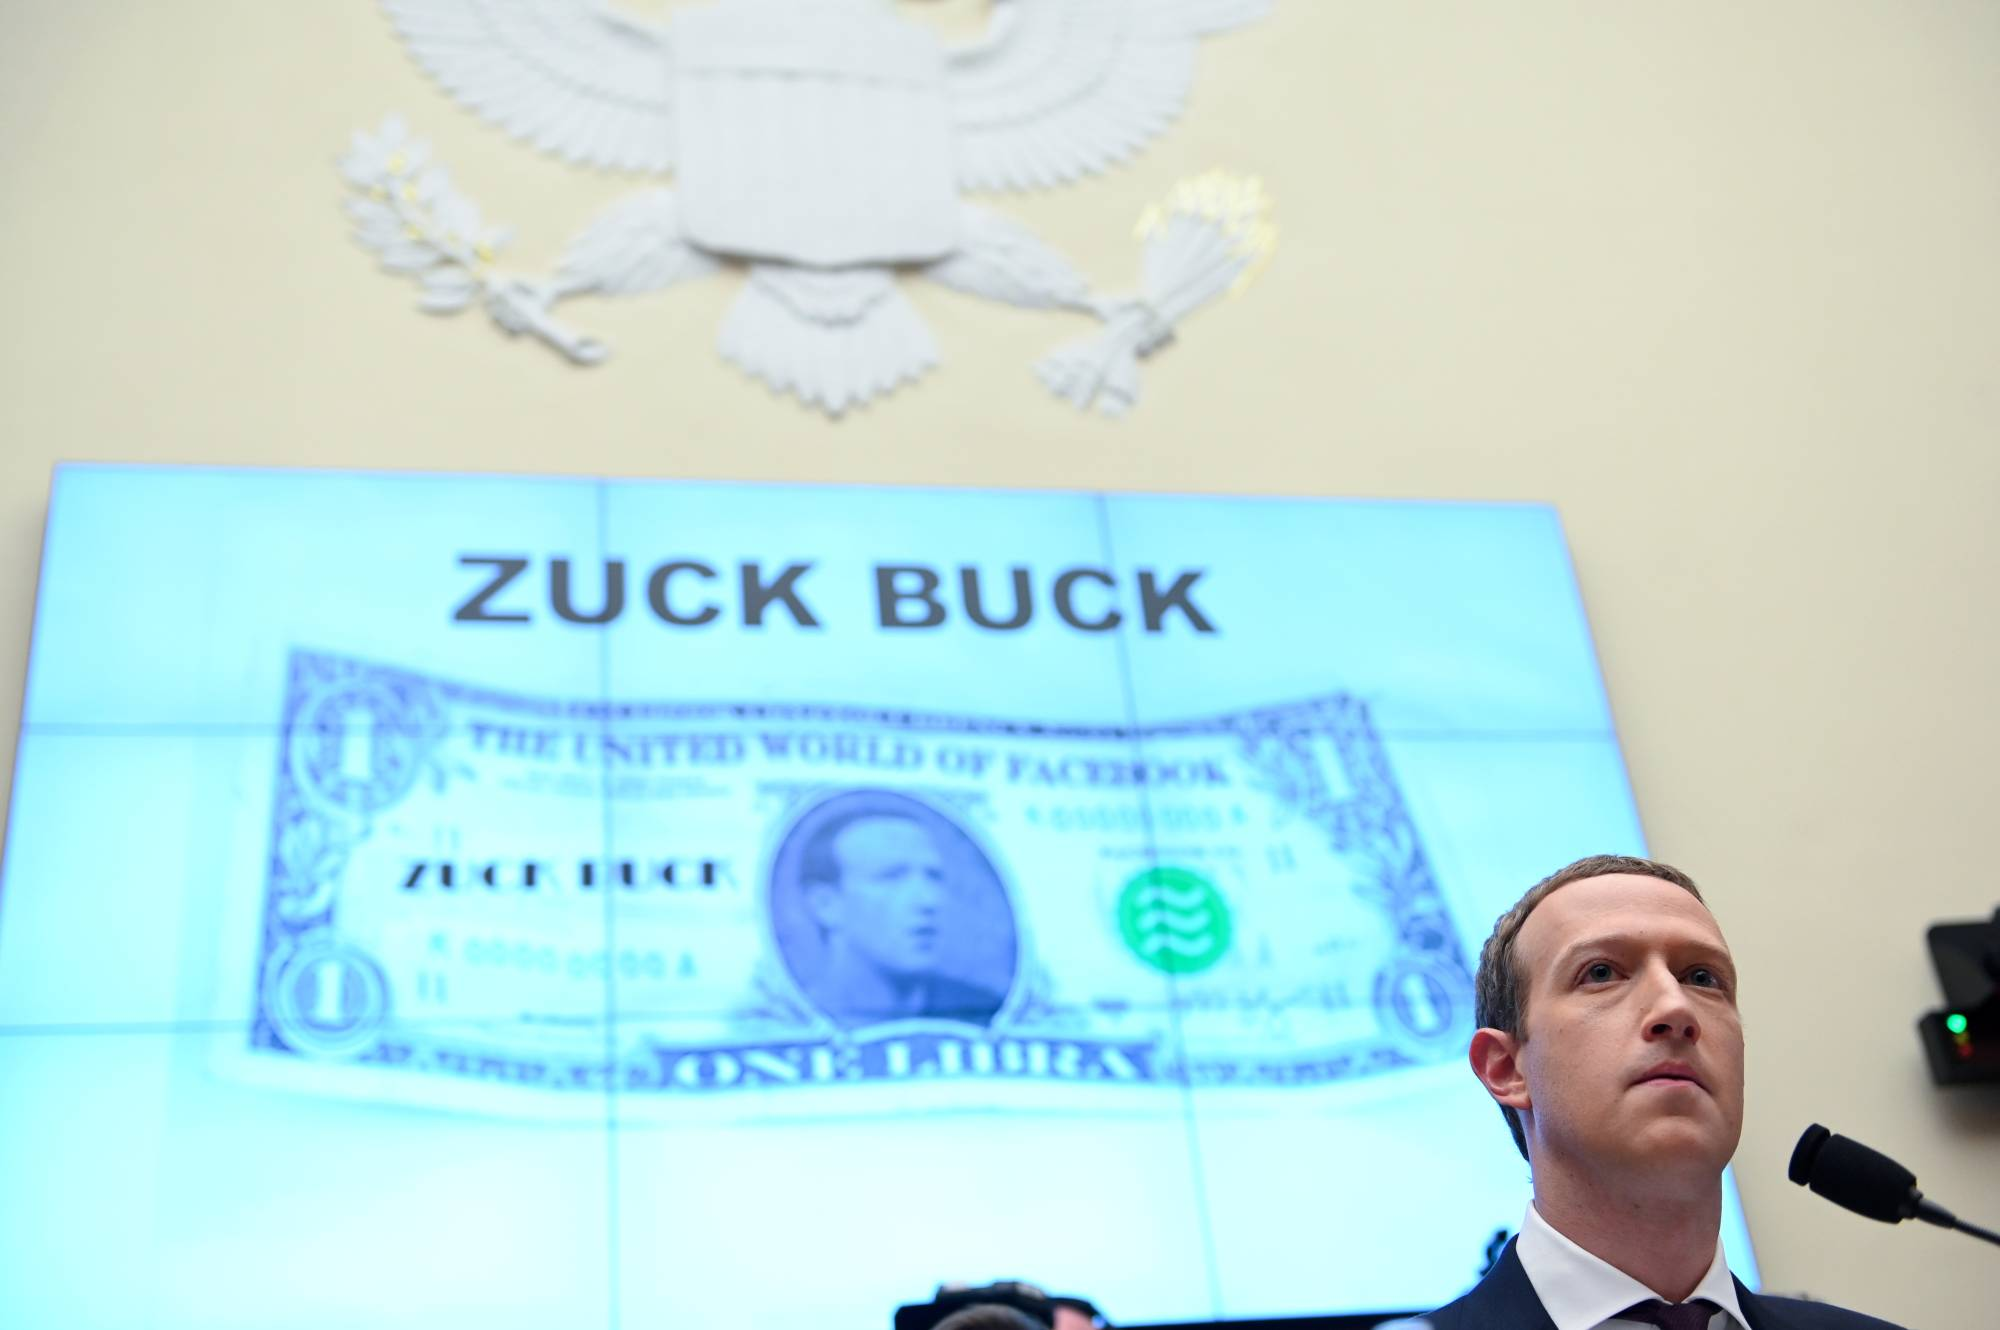 Facebook Chairman Mark Zuckerberg testifies at a House Financial Services Committee hearing on the company's plan to launch a digital currency, in Washington in October 2019. | REUTERS